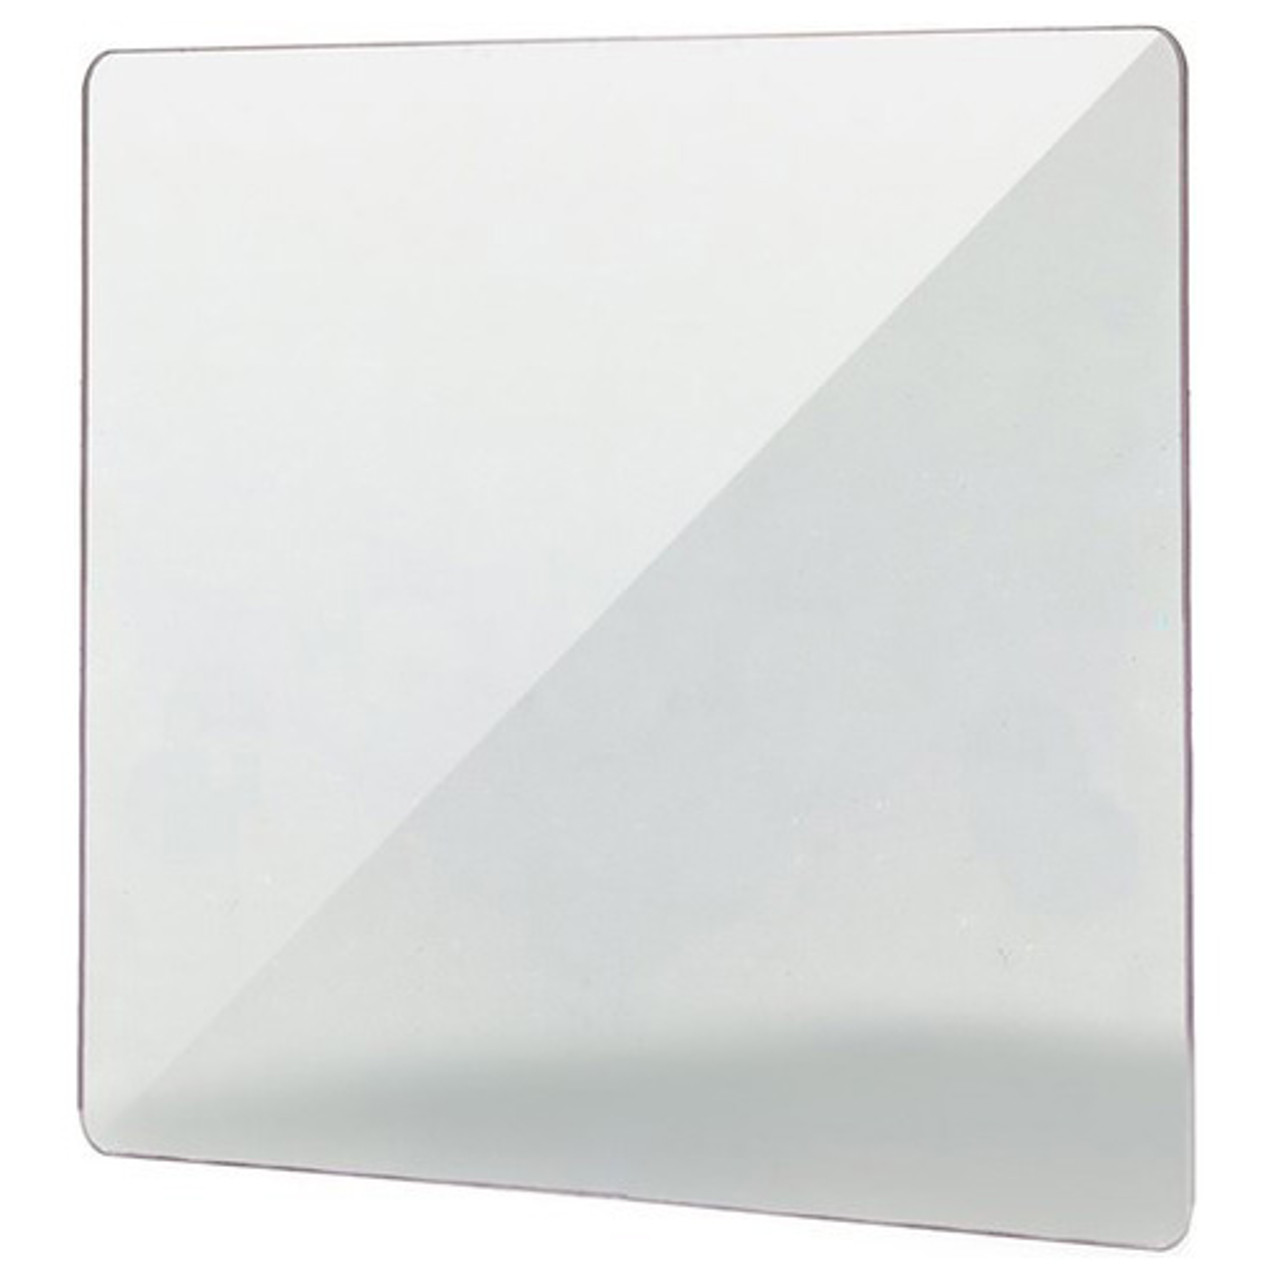 Deco Gear 10 Screen Protector (Customizable, cut to fit)